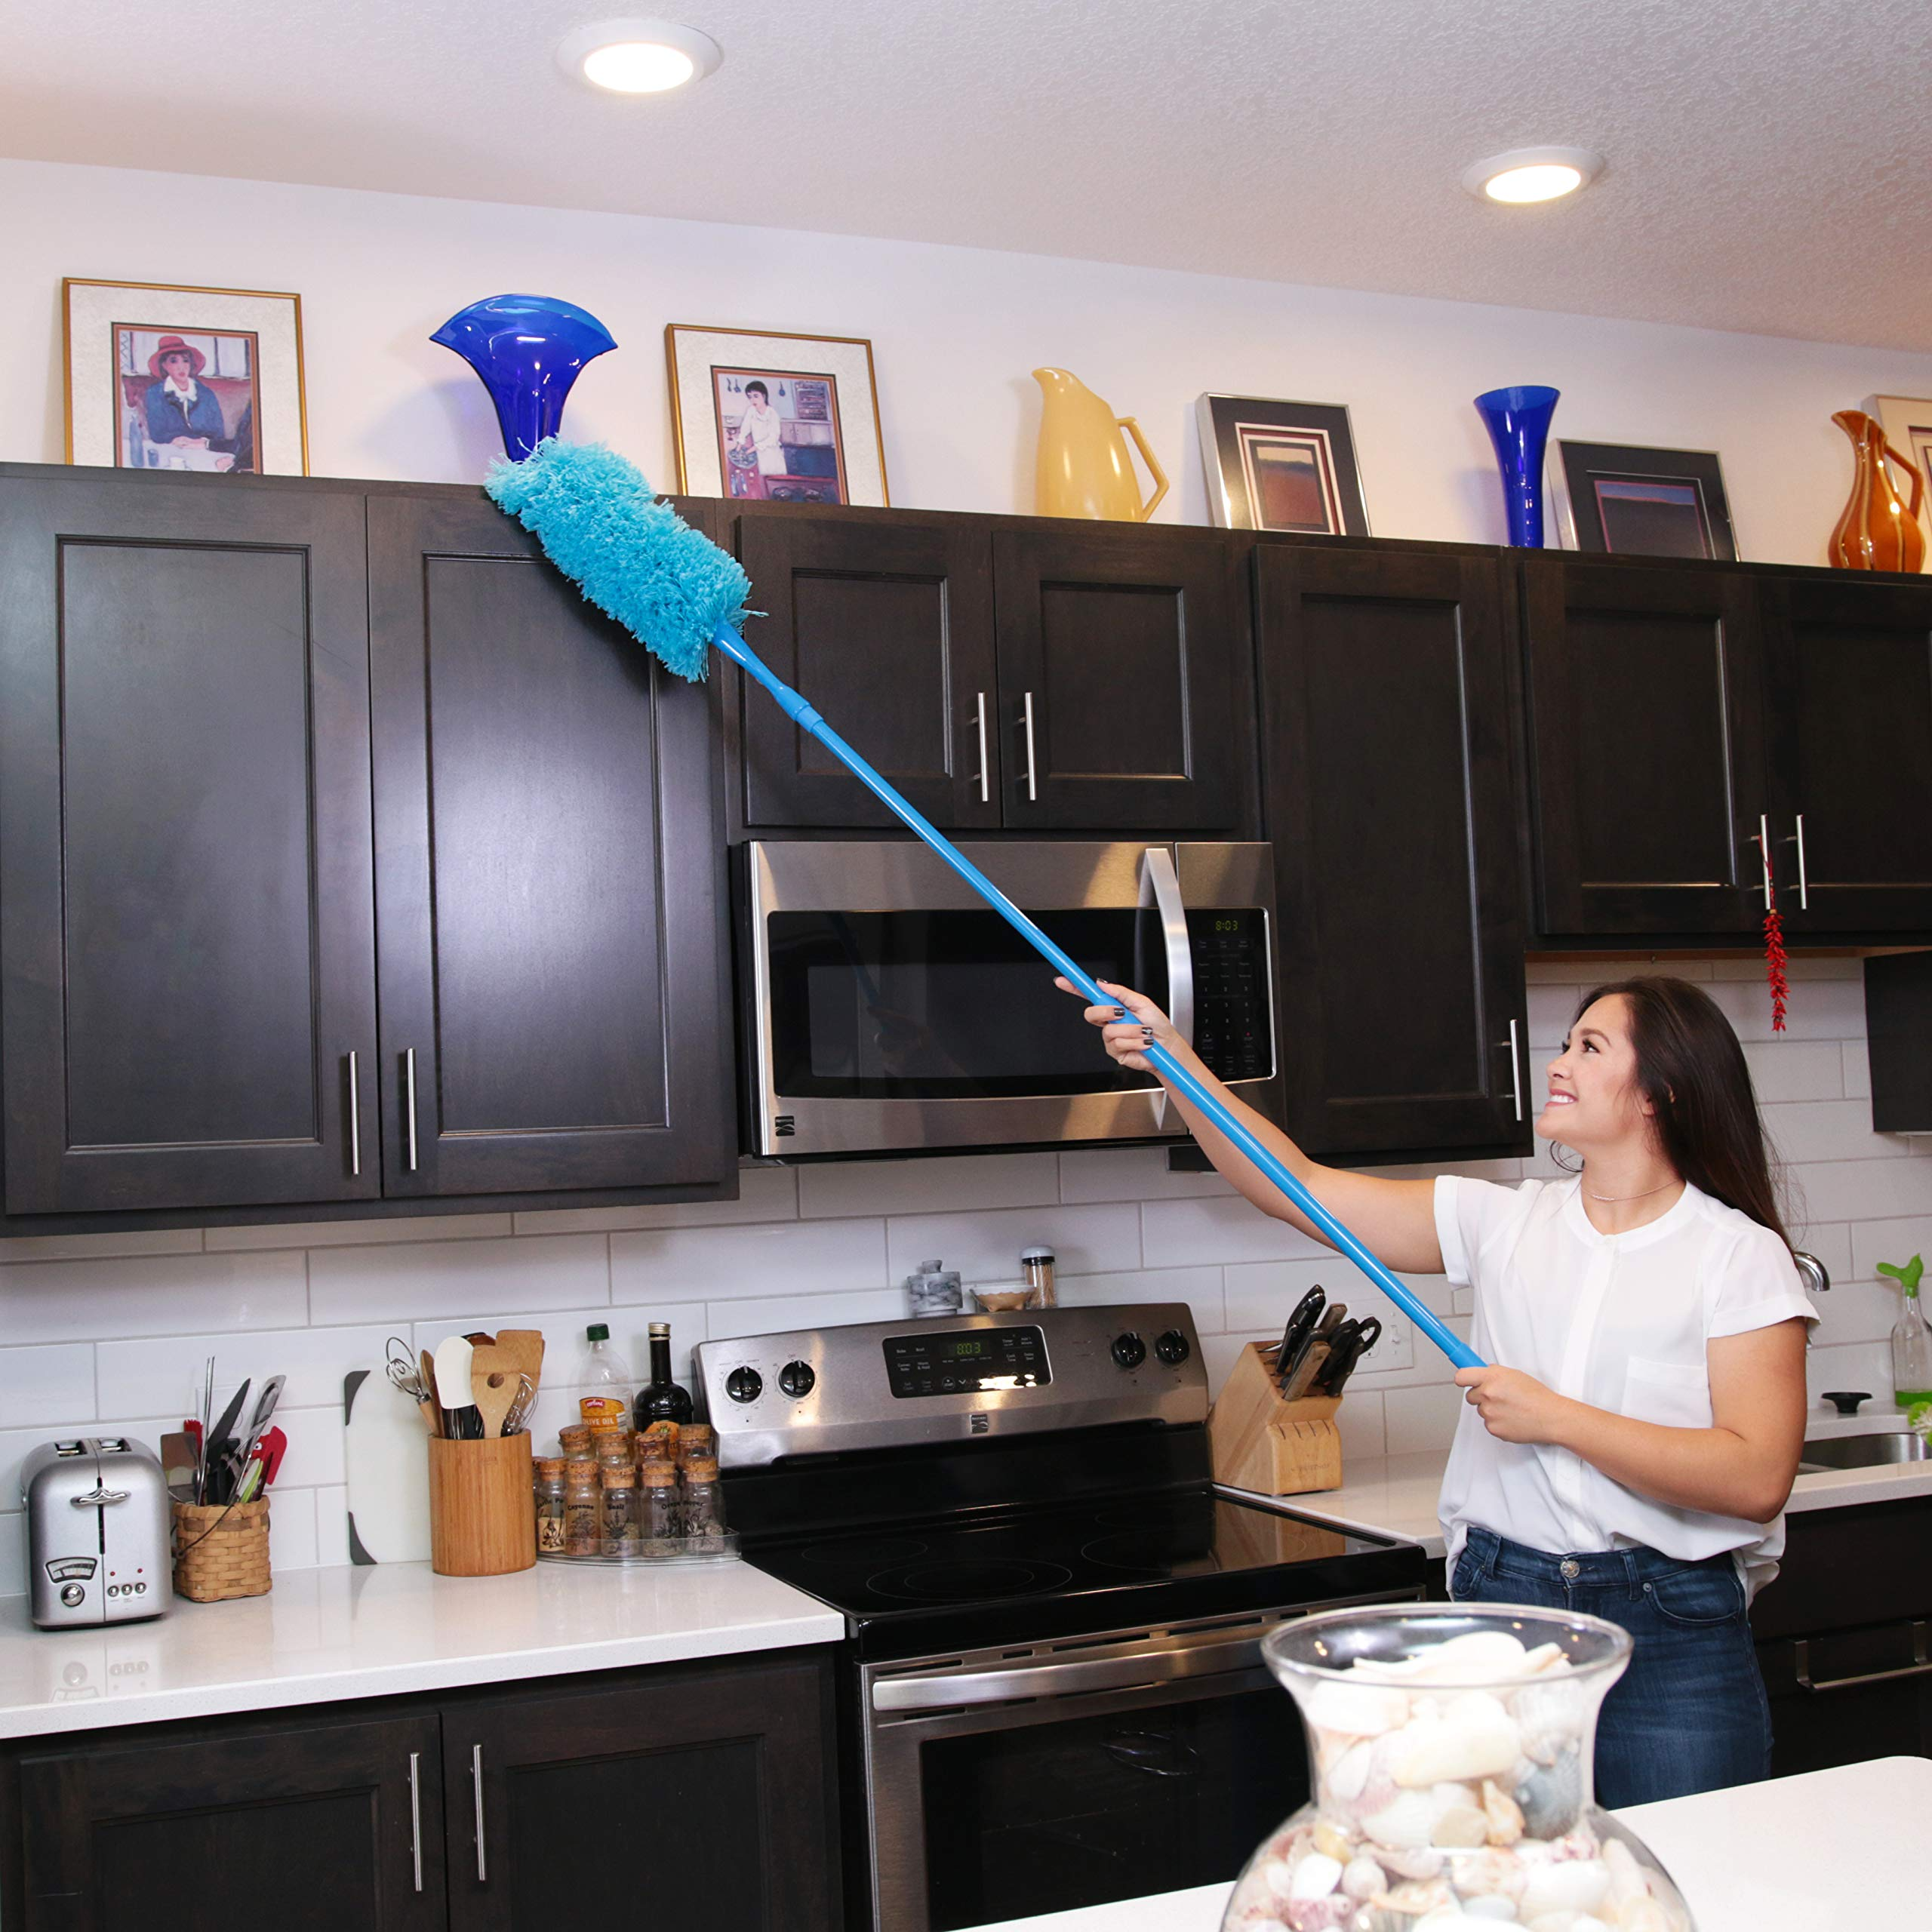 Hank HouseHold TriboDuster with Bonus Blinds Cleaner - Microfiber Duster for Cleaning with Extendable Telescoping Pole Up to 5ft6''! Ceiling Fan Dusters, Cobweb/Spider Web Brush and Blind Duster by Hank HouseHold (Image #3)